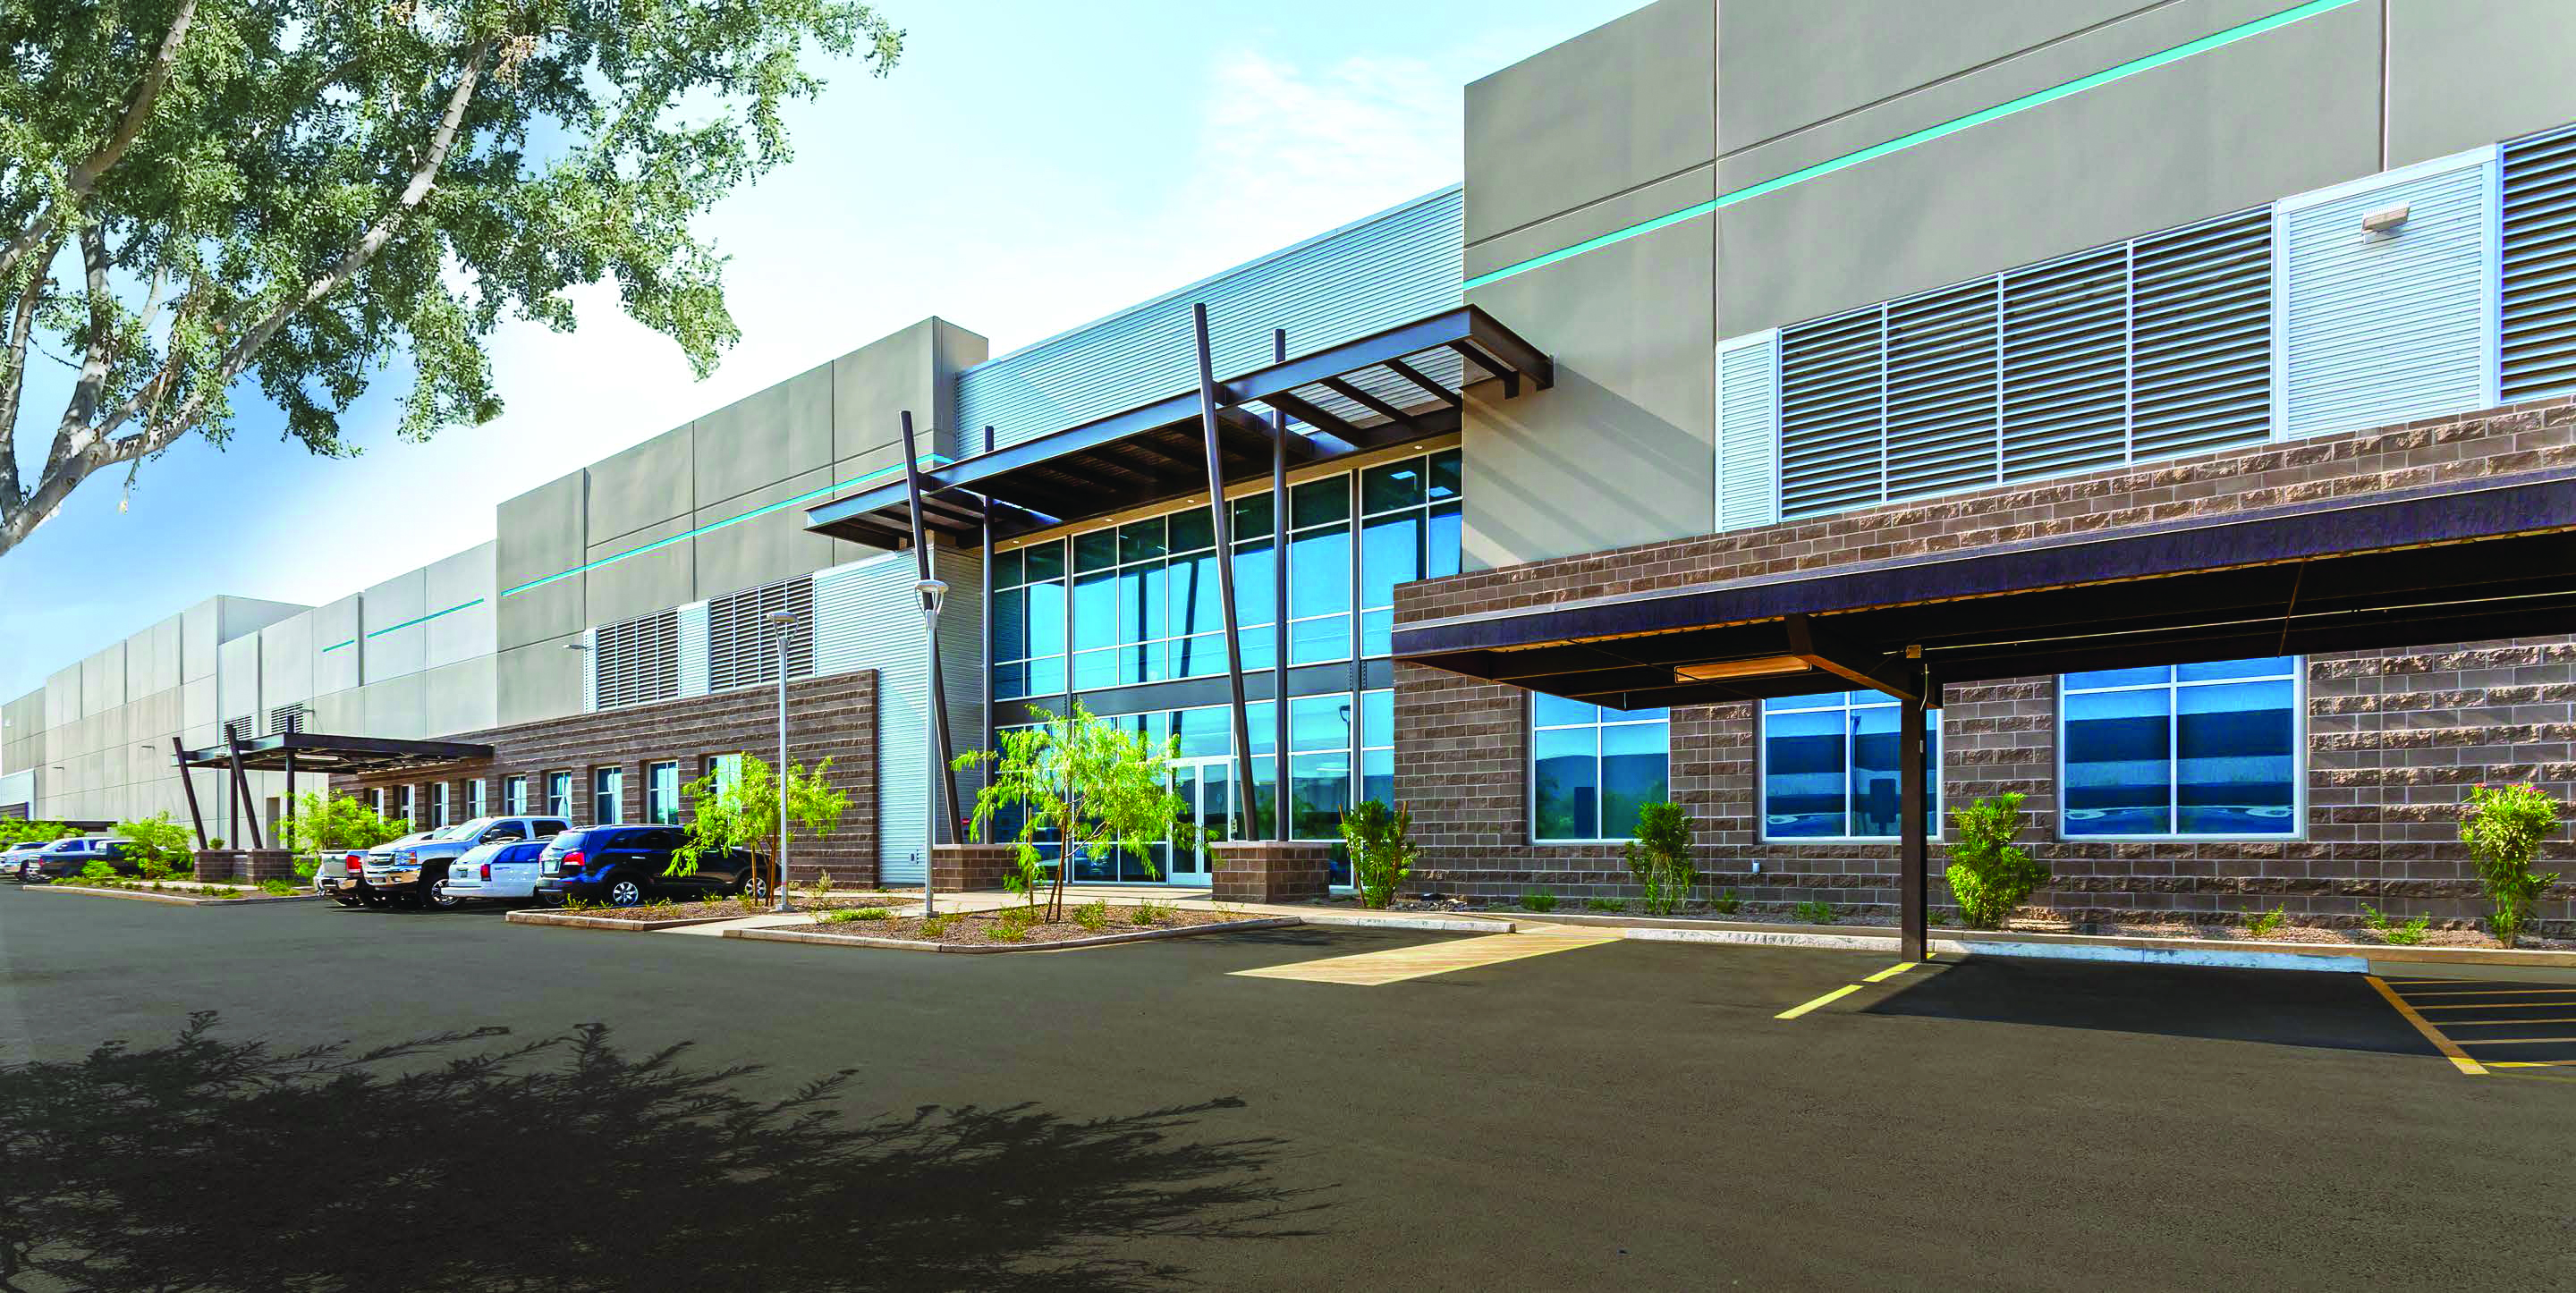 Image for Collaborative Planning Efforts Help With Arizona Food & Beverage Facility